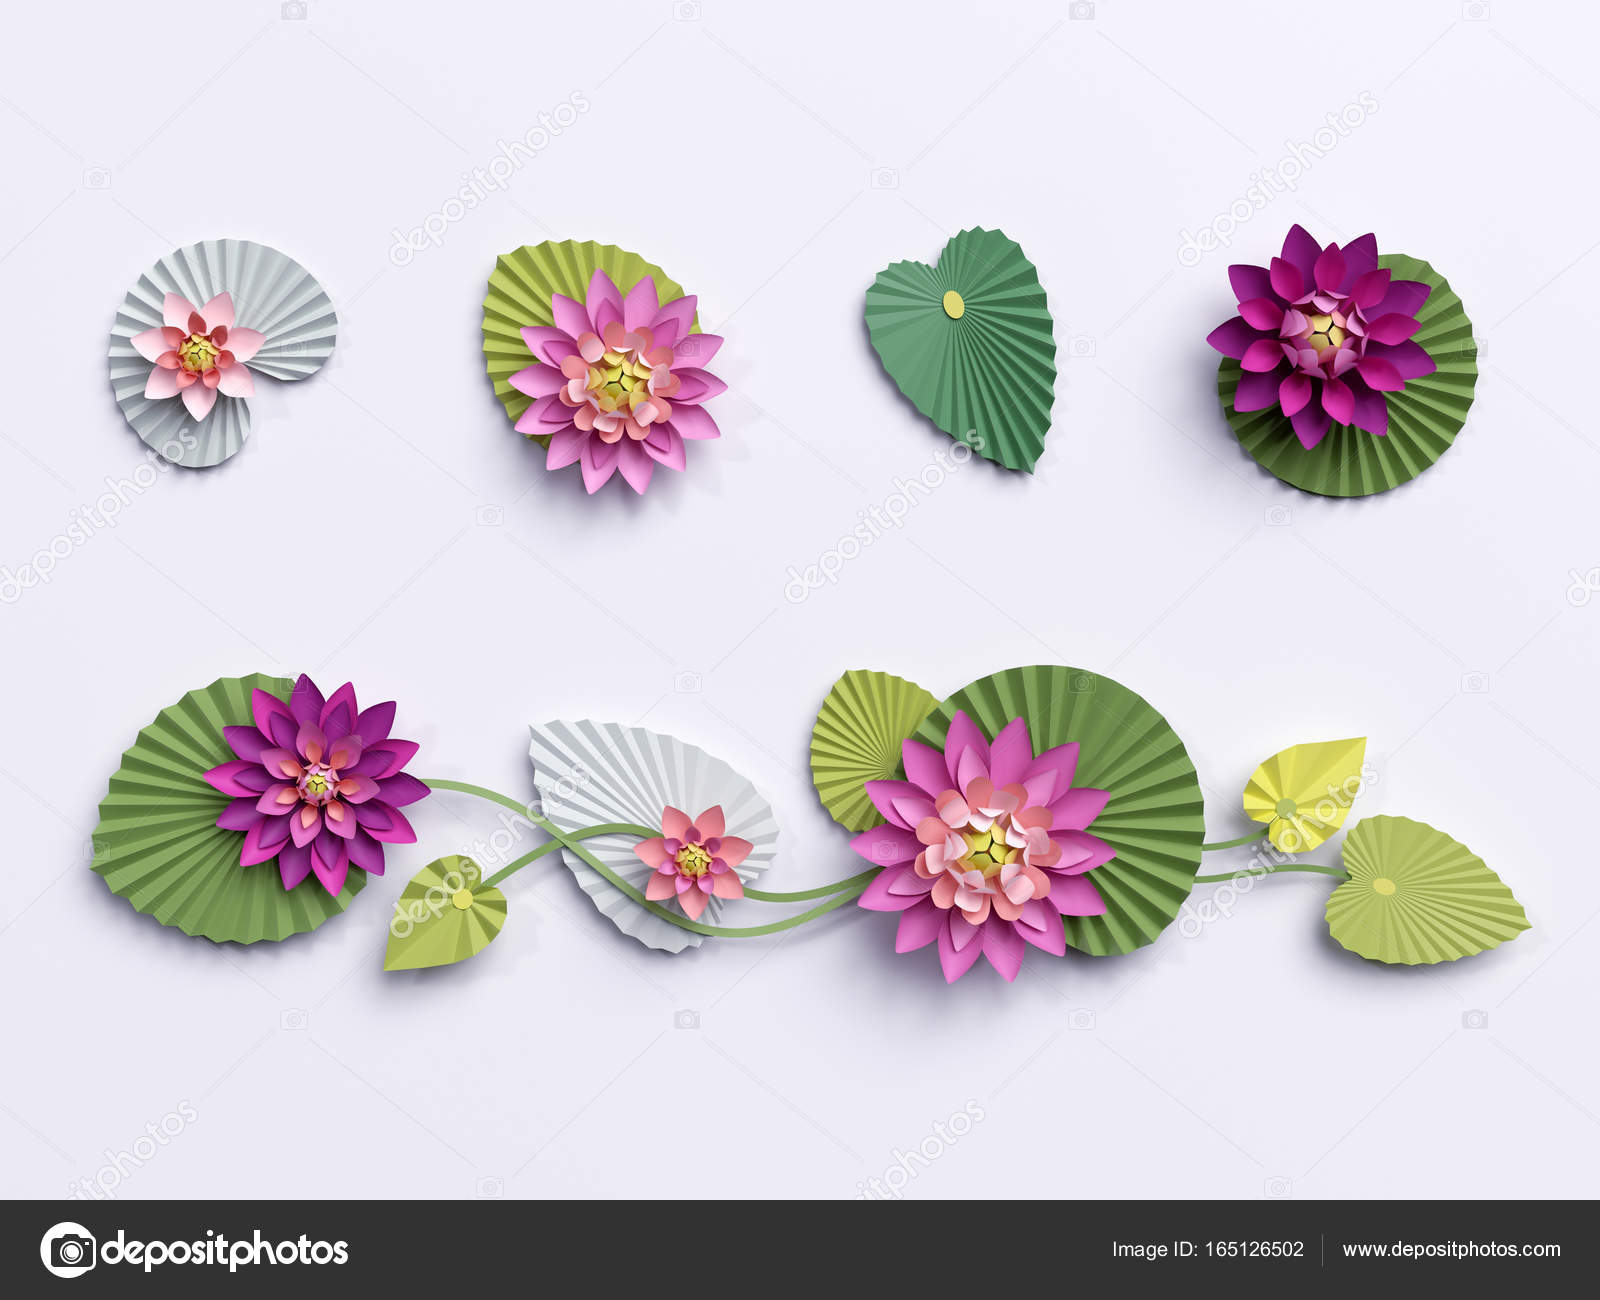 3d render paper lotus flowers wall decoration border pink wa 3d render paper lotus flowers wall decoration border pink water lily green leaves design elements isolated on white background photo by wacomka mightylinksfo